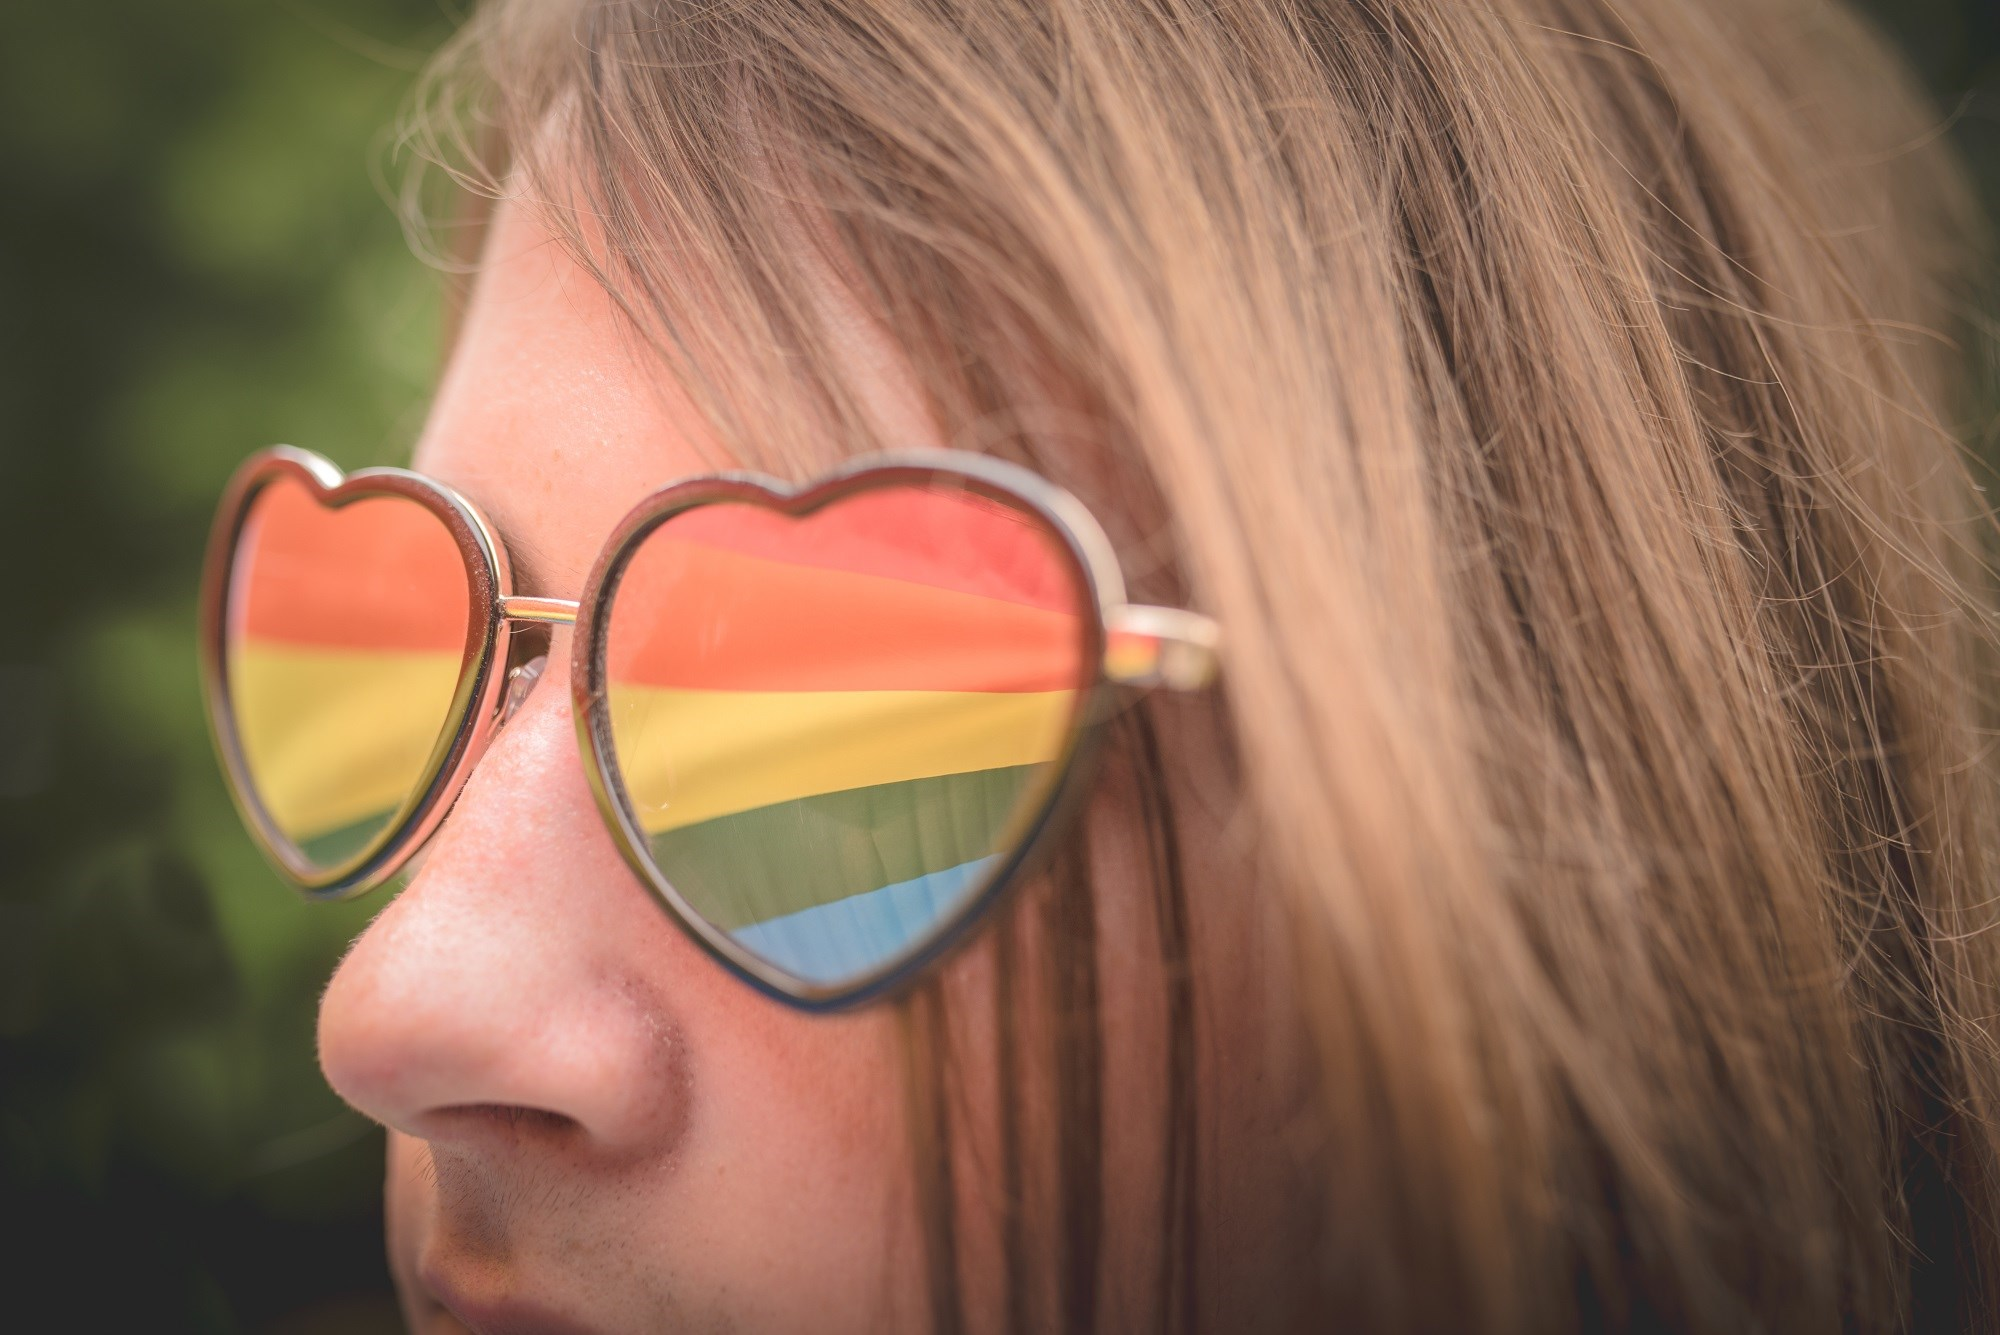 Transgender boys face the highest risk for suicide among adolescents of all genders.